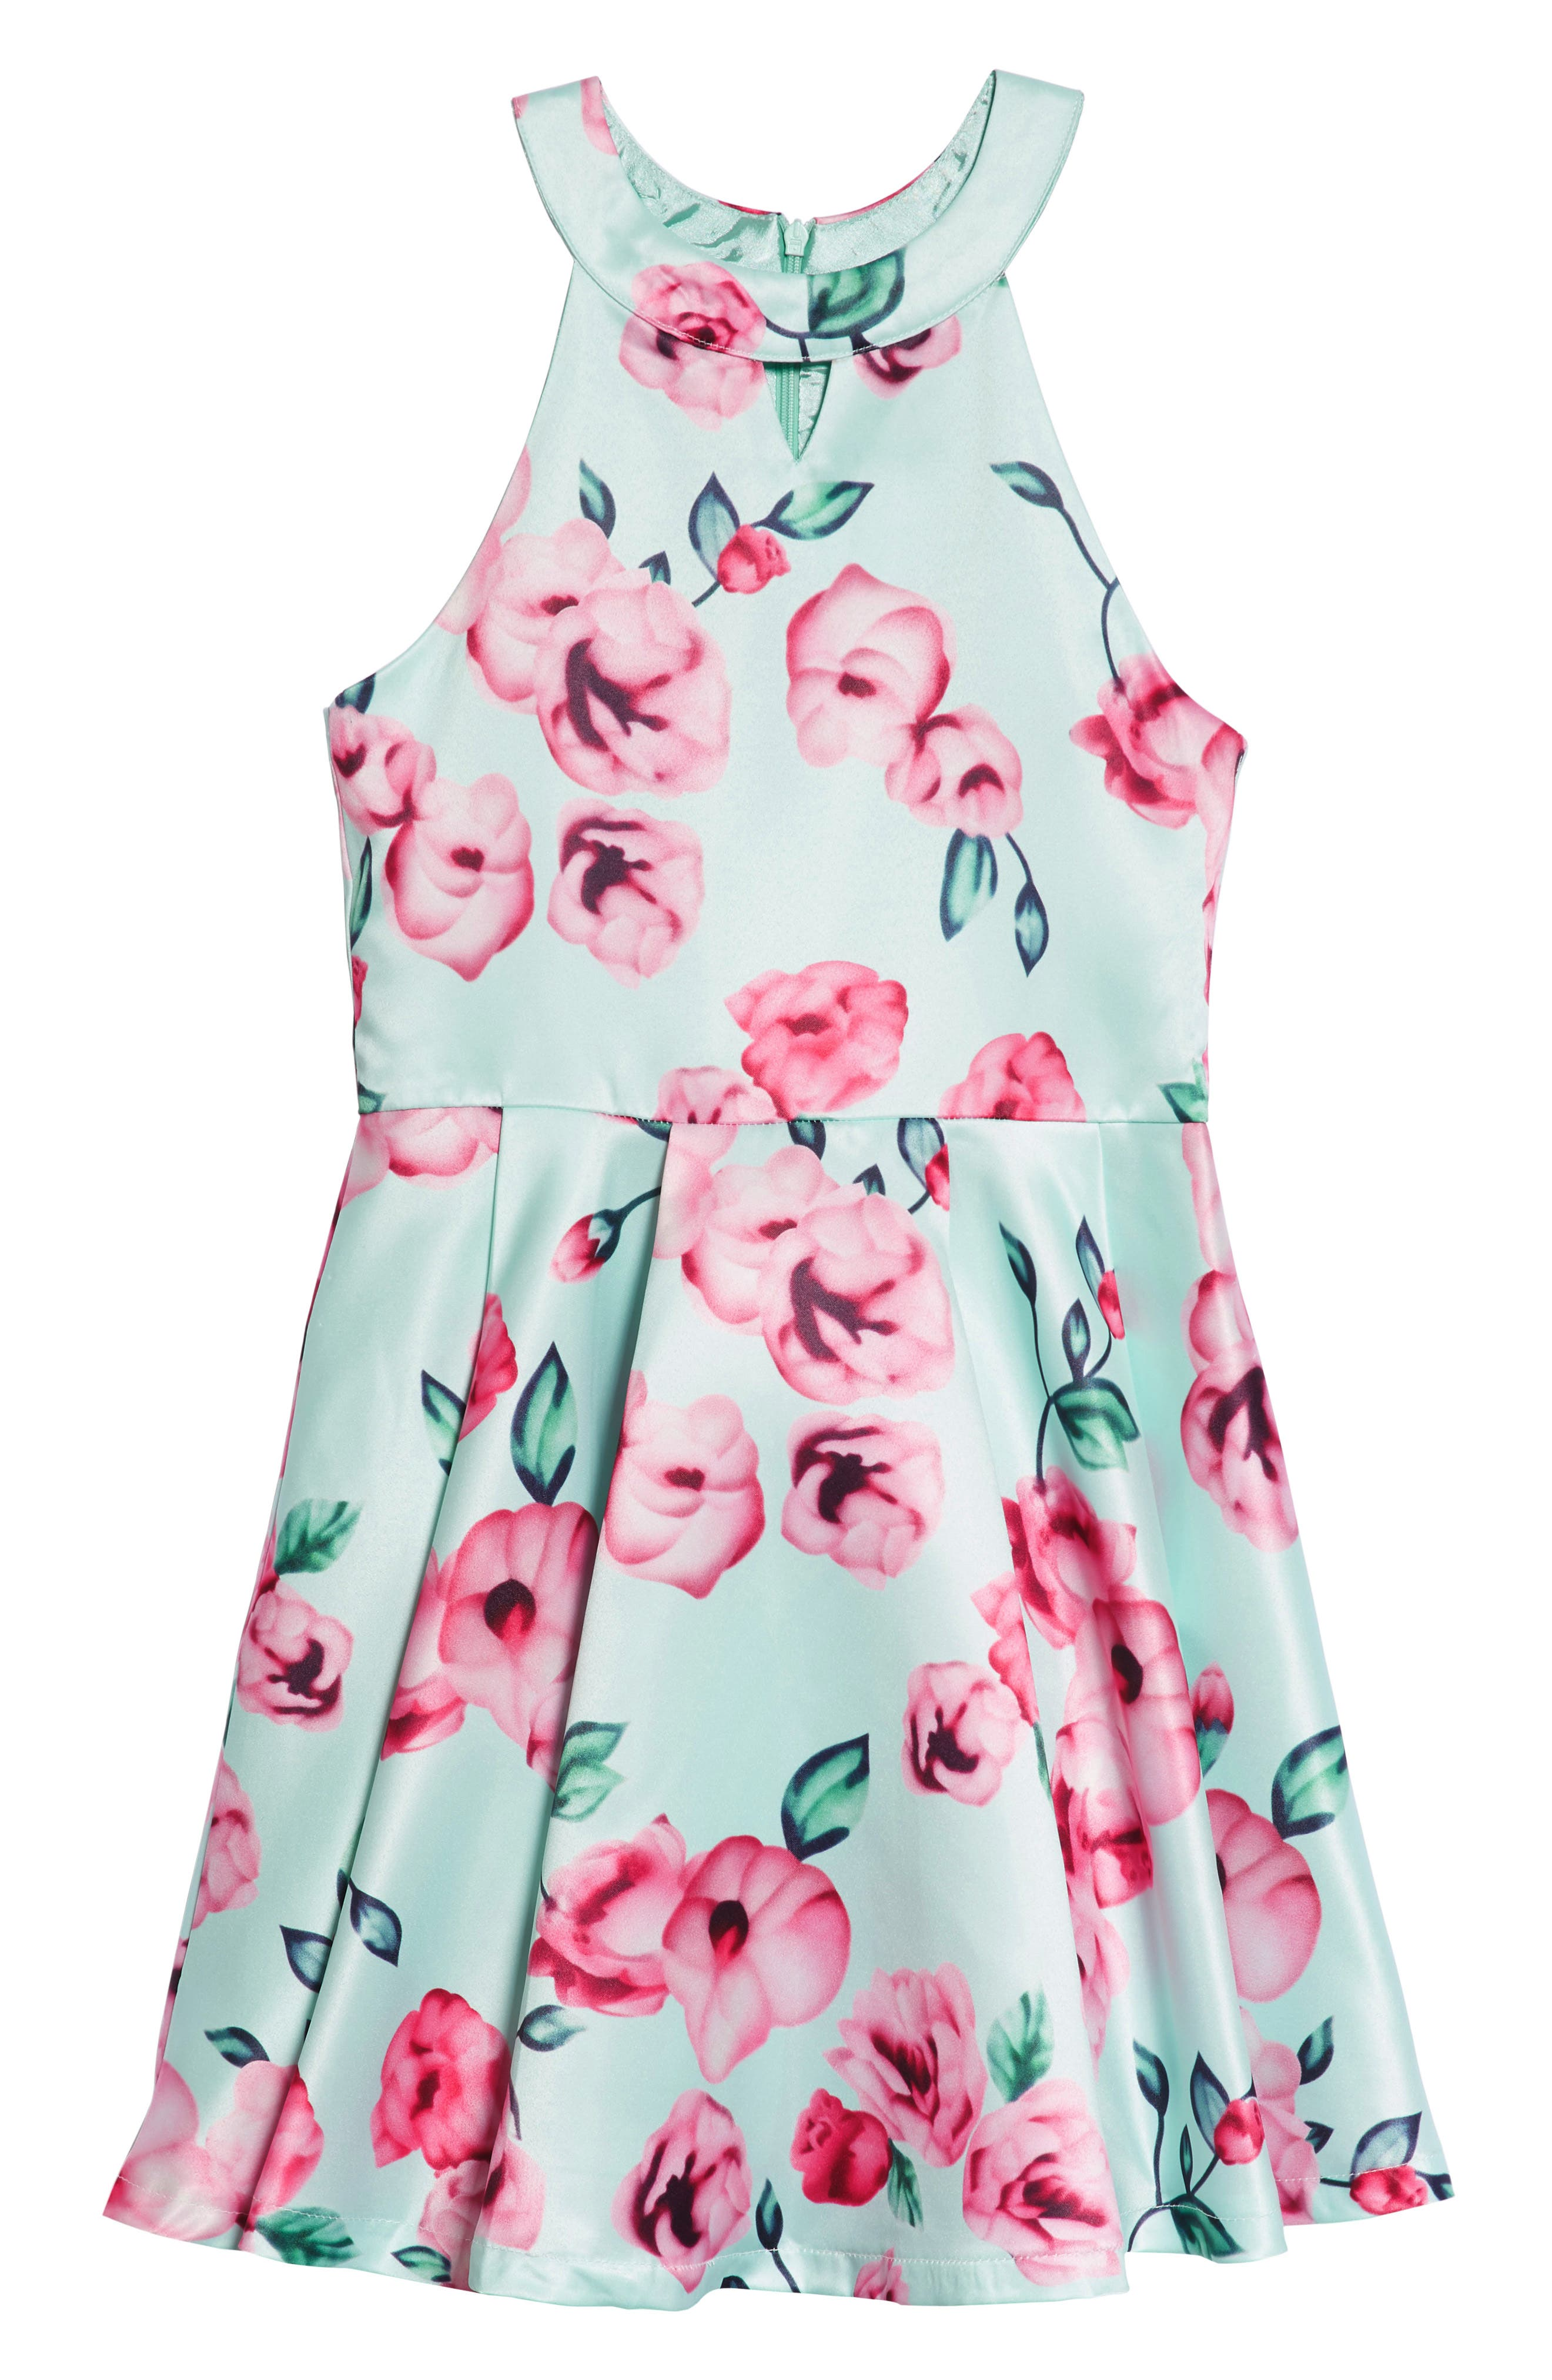 Floral Fit & Flare Dress,                             Main thumbnail 1, color,                             300